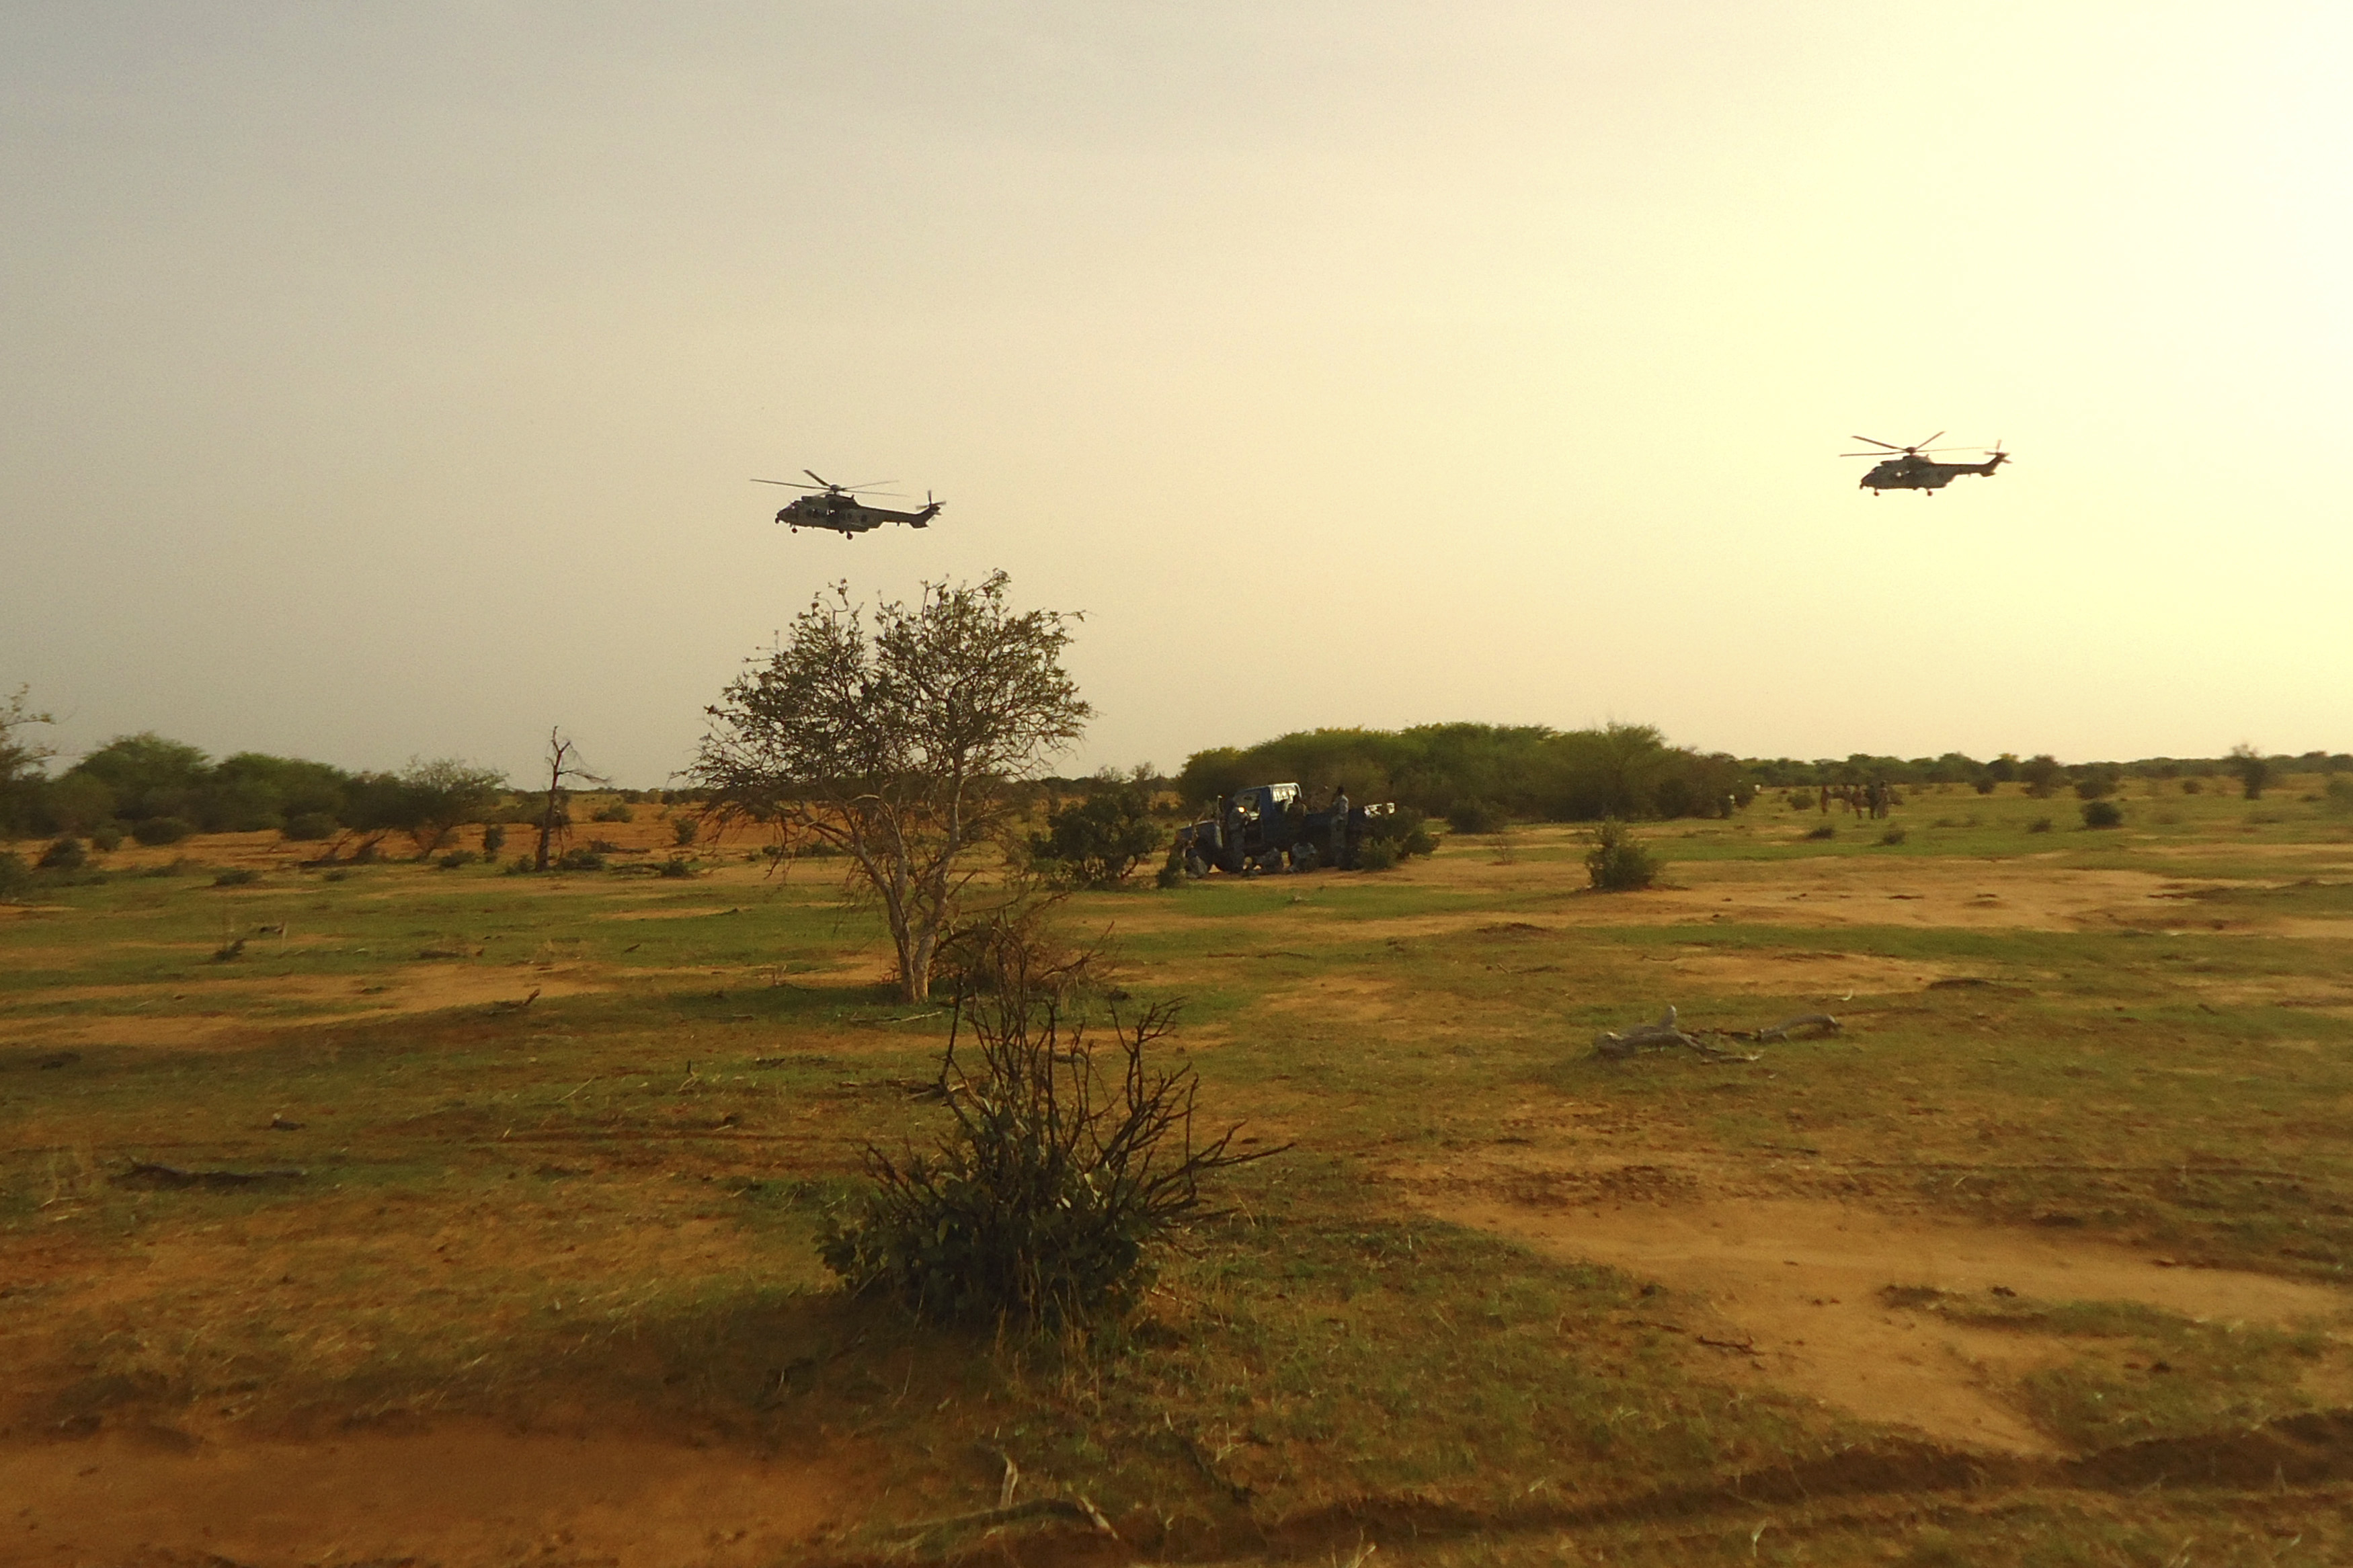 French military helicopters fly above the crash site of Air Algérie Flight 5017 near the northern Mali town of Gossi on July 24, 2014